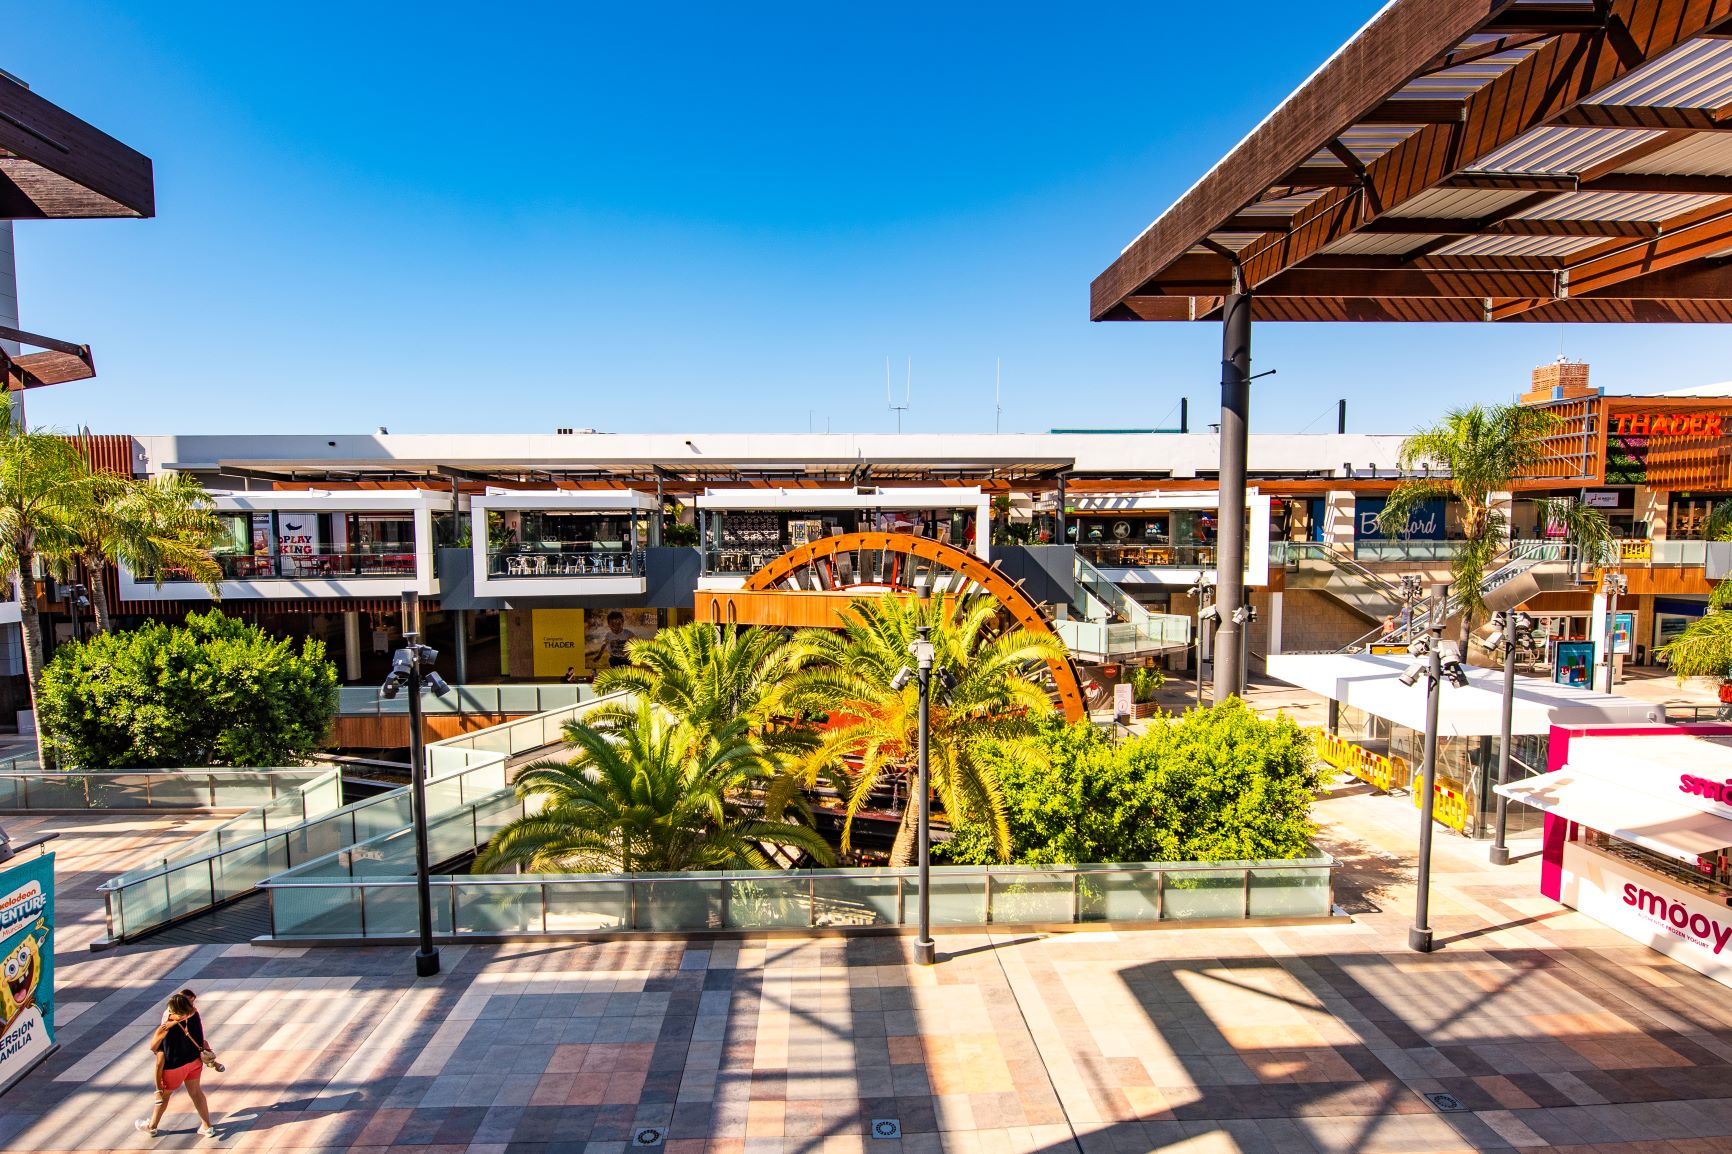 SILICIUS will undergo an investment of €6,2 million to improve the equipment in Thader, La Fira and Bahía Plaza's shopping centres